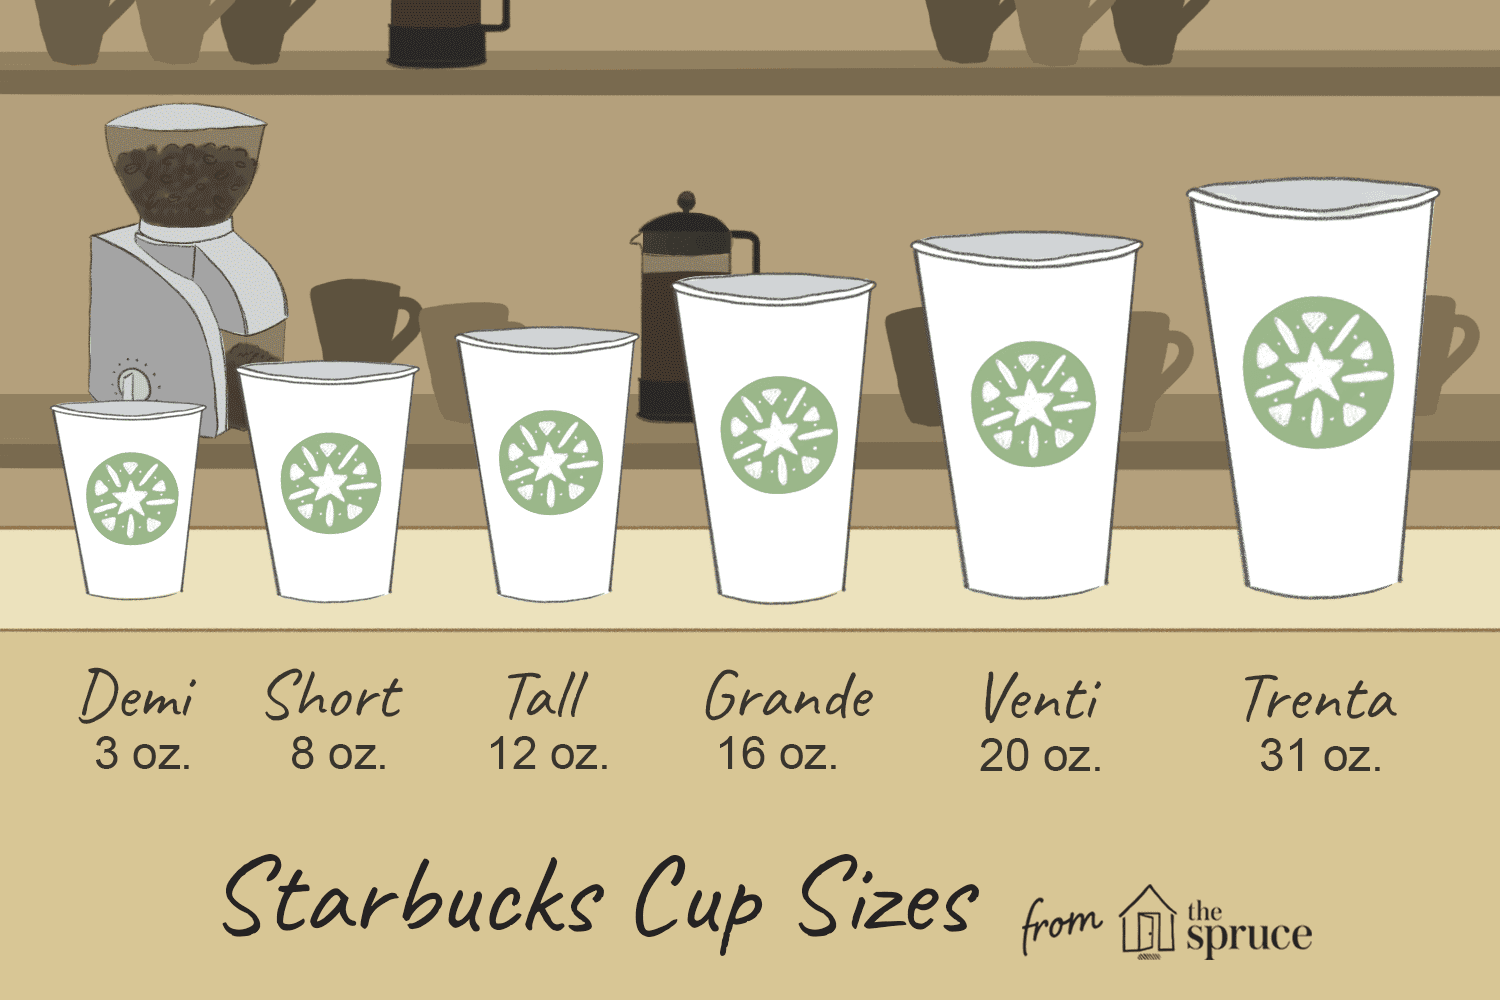 how many ounces are in starbucks drink sizes